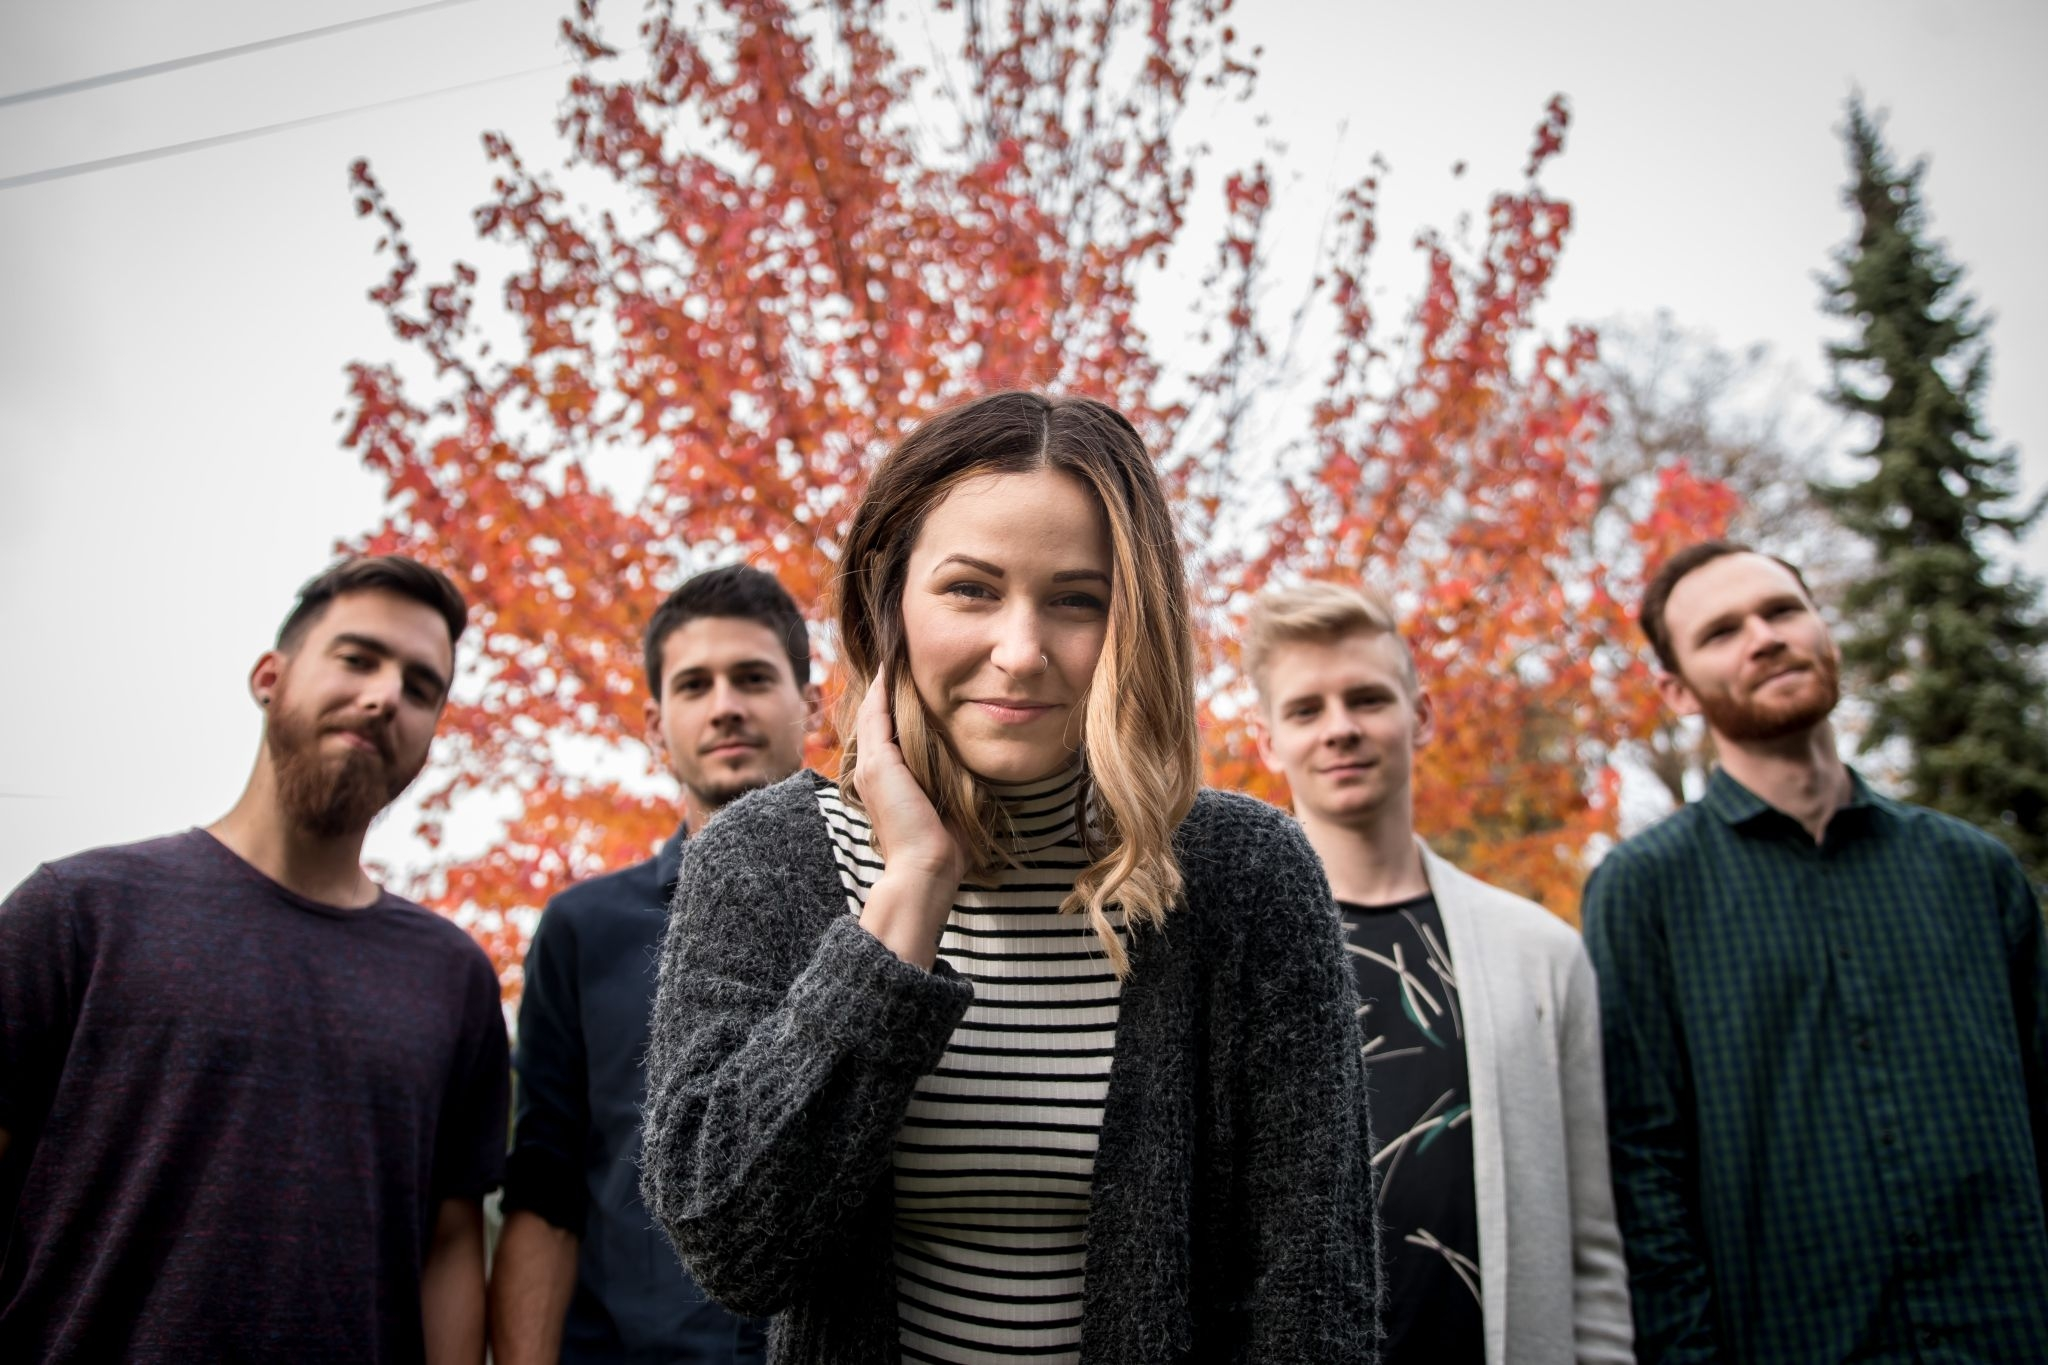 Former #BandOfTheMonth Lovecoast covers BØRNS Electric Love